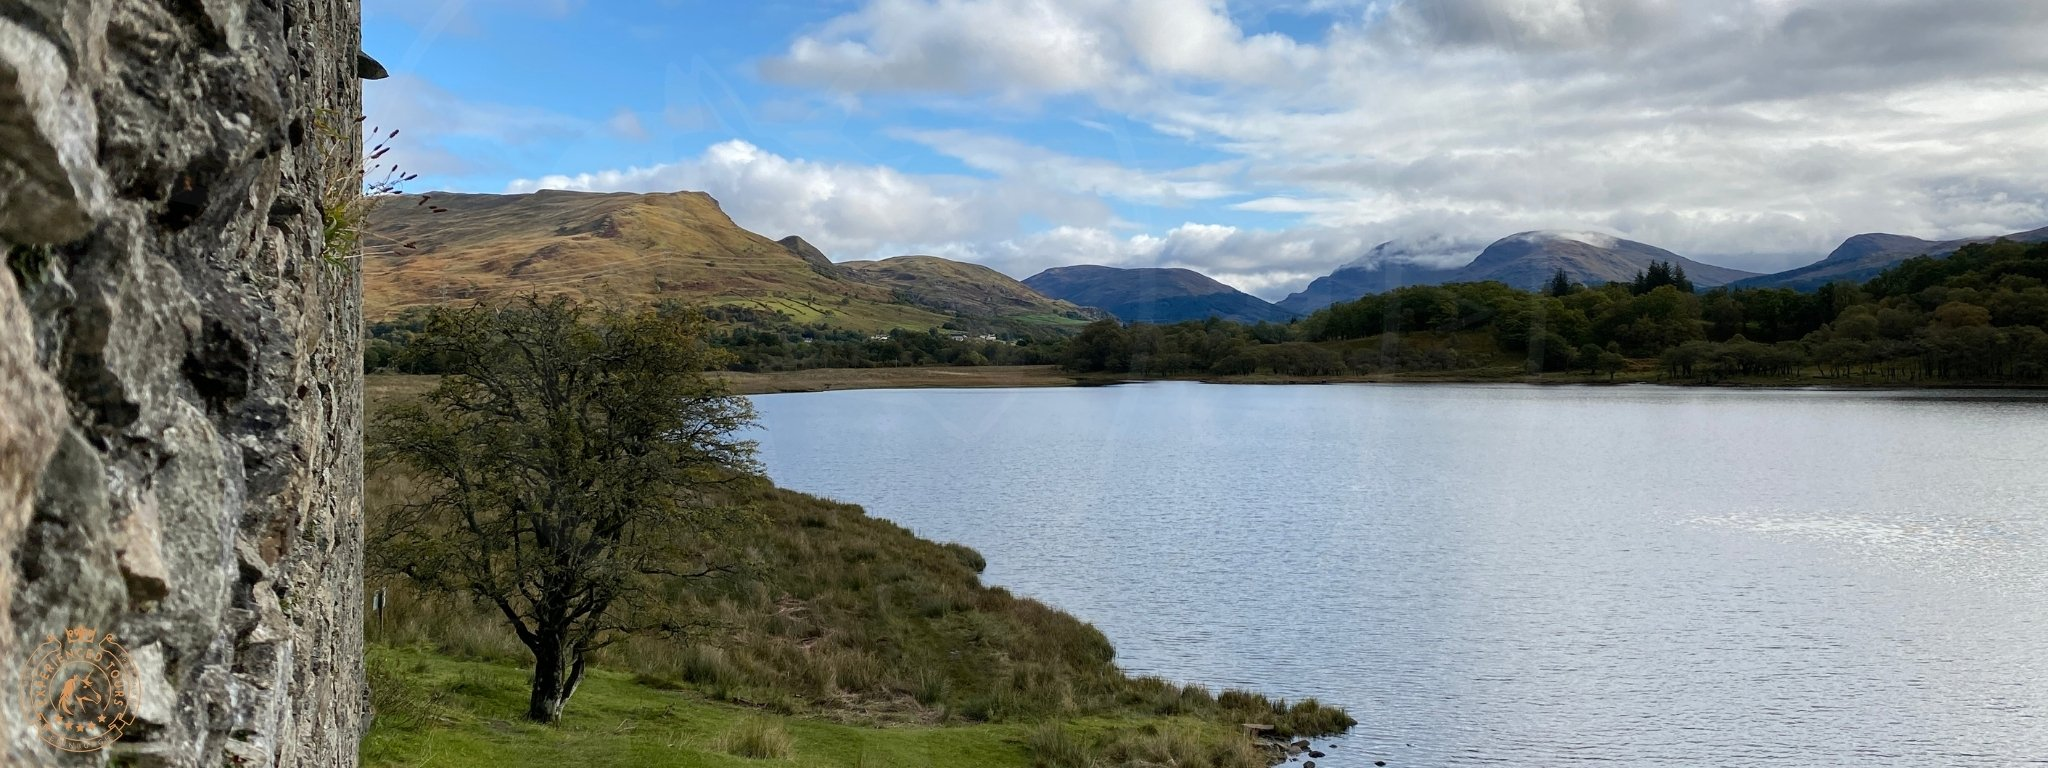 View over the head of Loch Awe from Kilchurn Castle